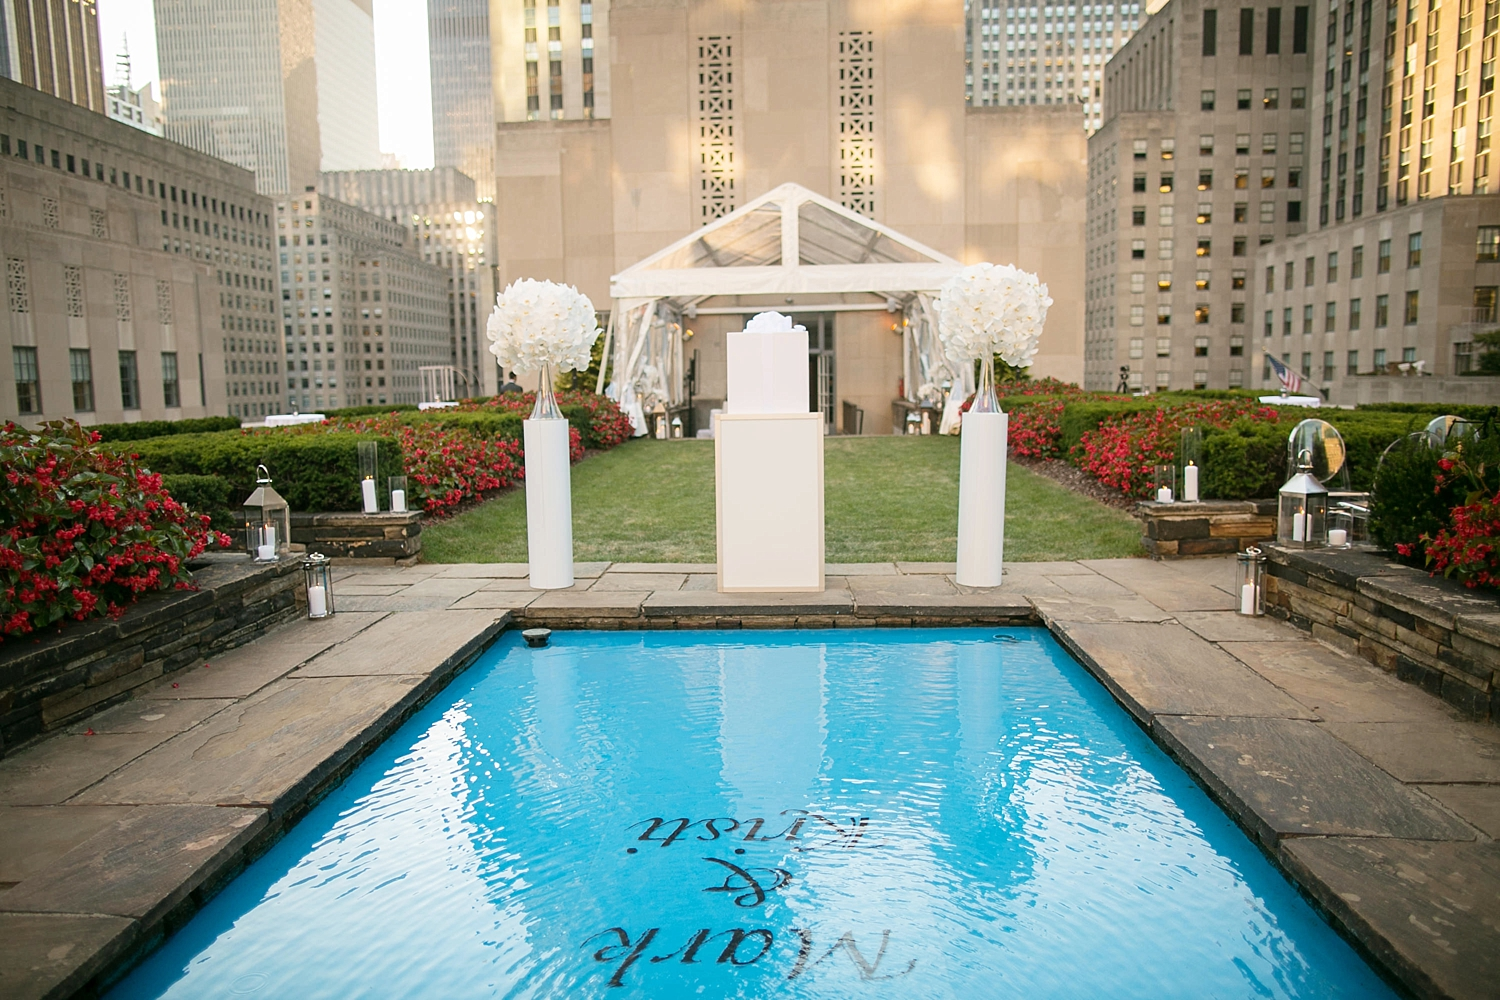 620 Loft and Garden luxury name in water New York proposal The Heart Bandits